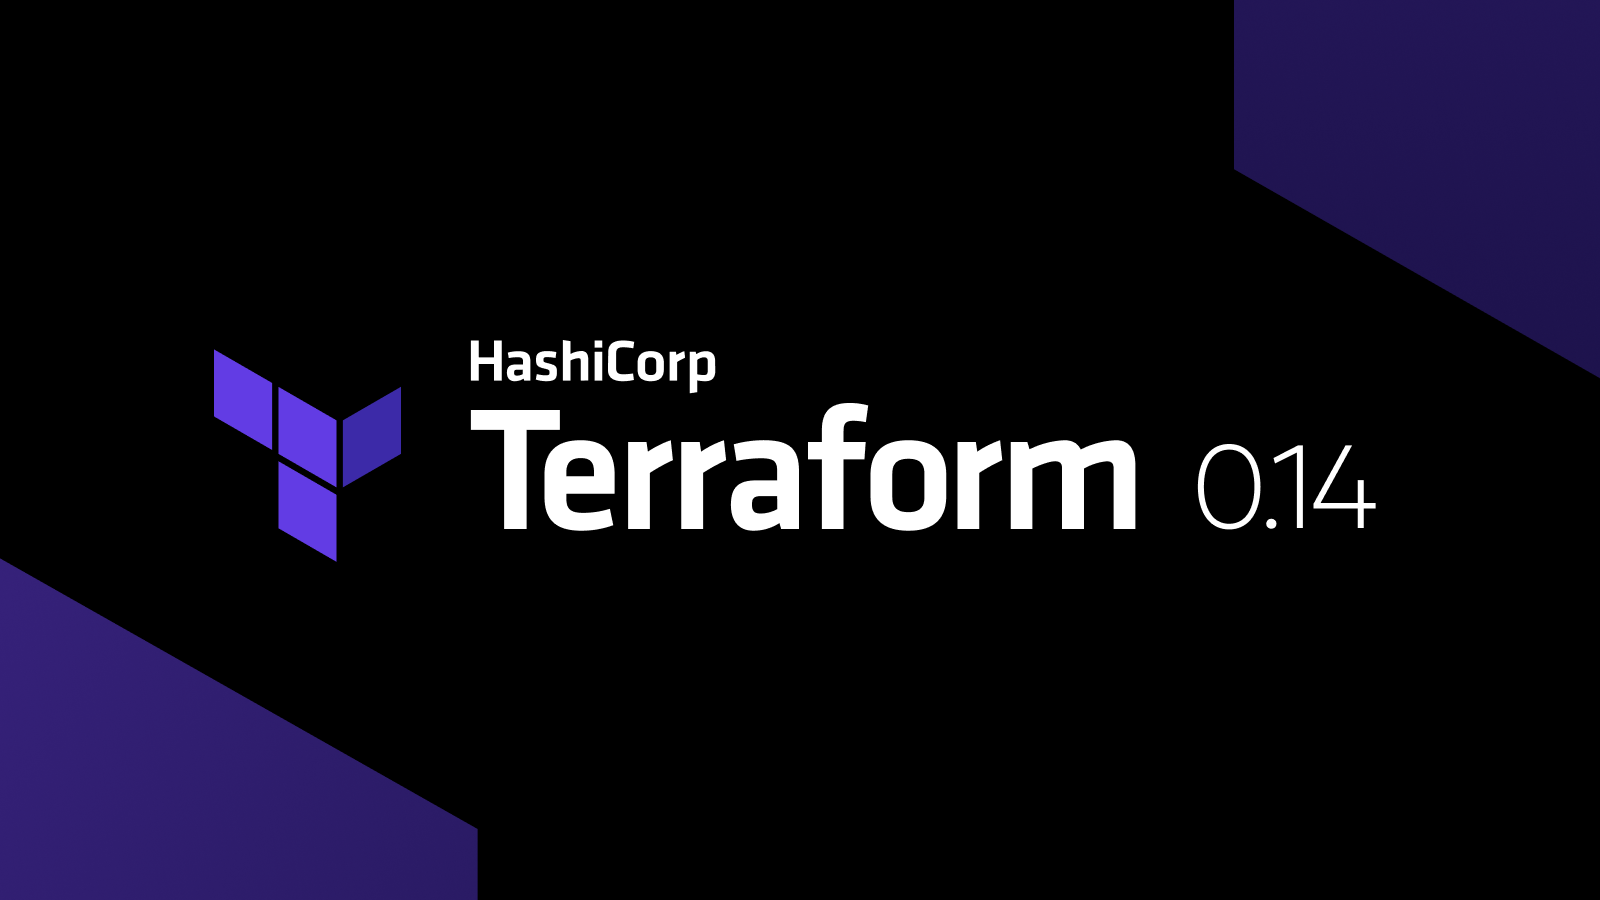 Announcing HashiCorp Terraform 0.14 Beta